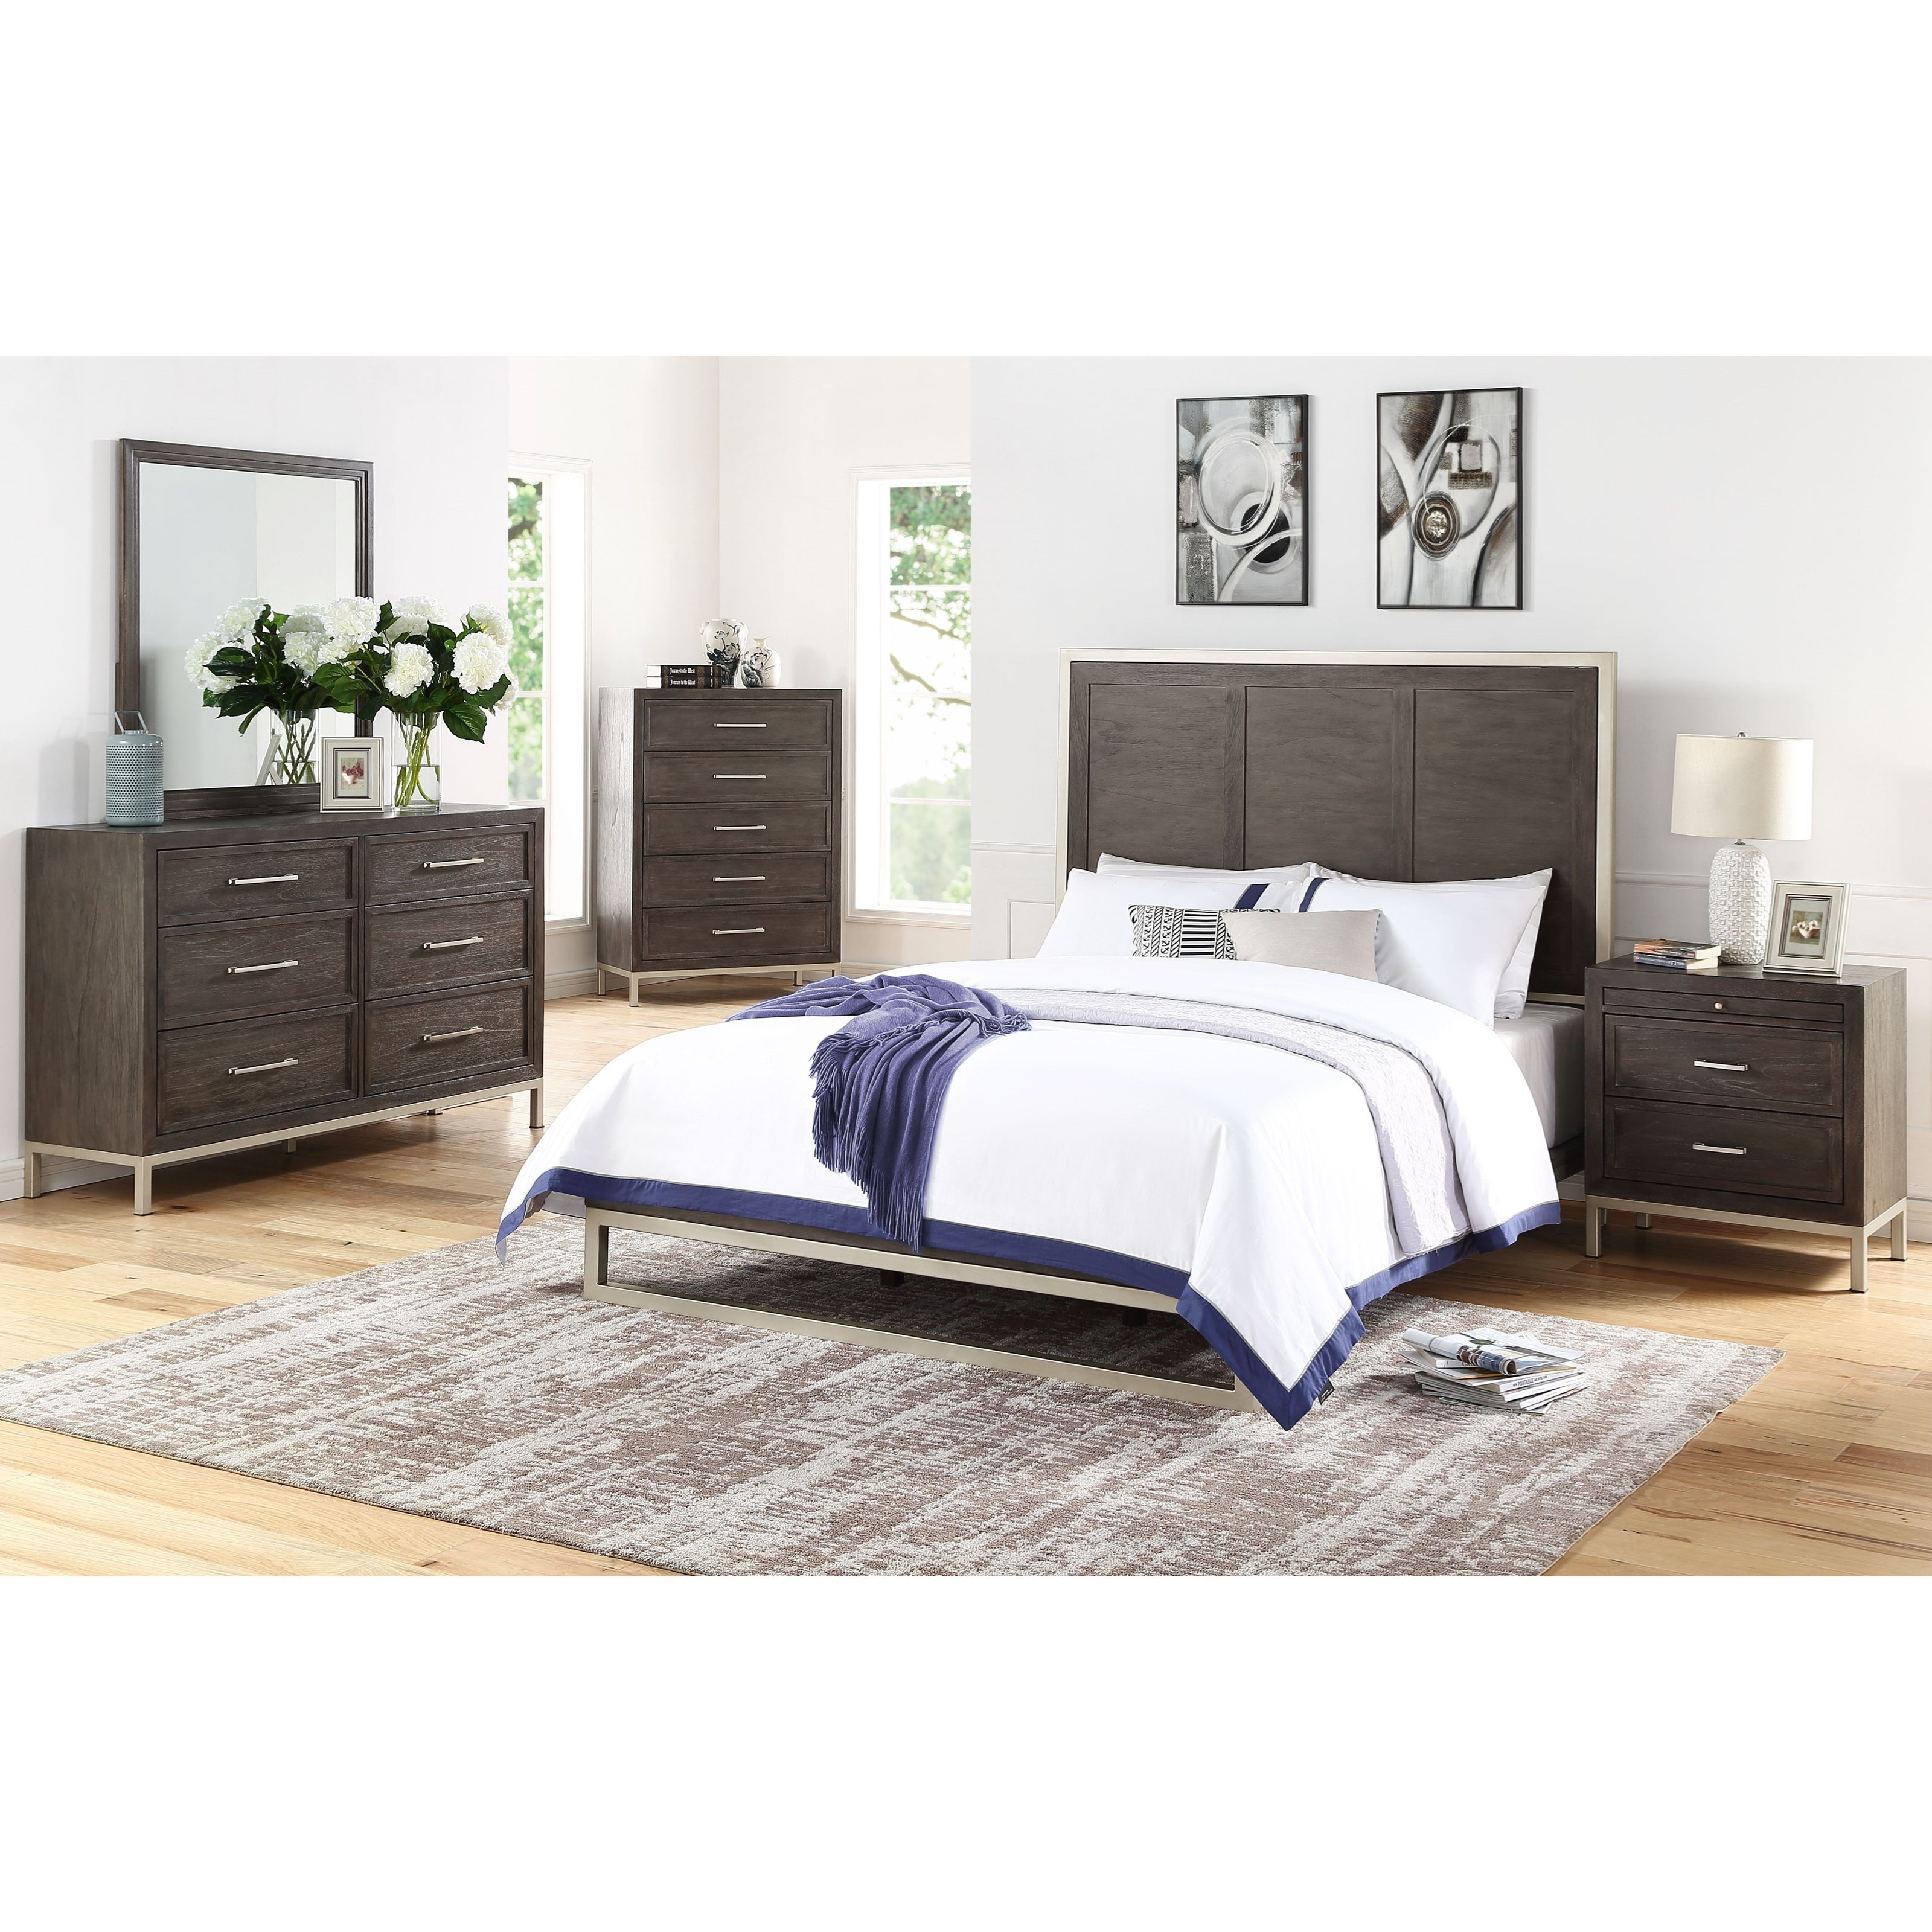 Broomfield Queen Bedroom Group by Steve Silver at Northeast Factory Direct